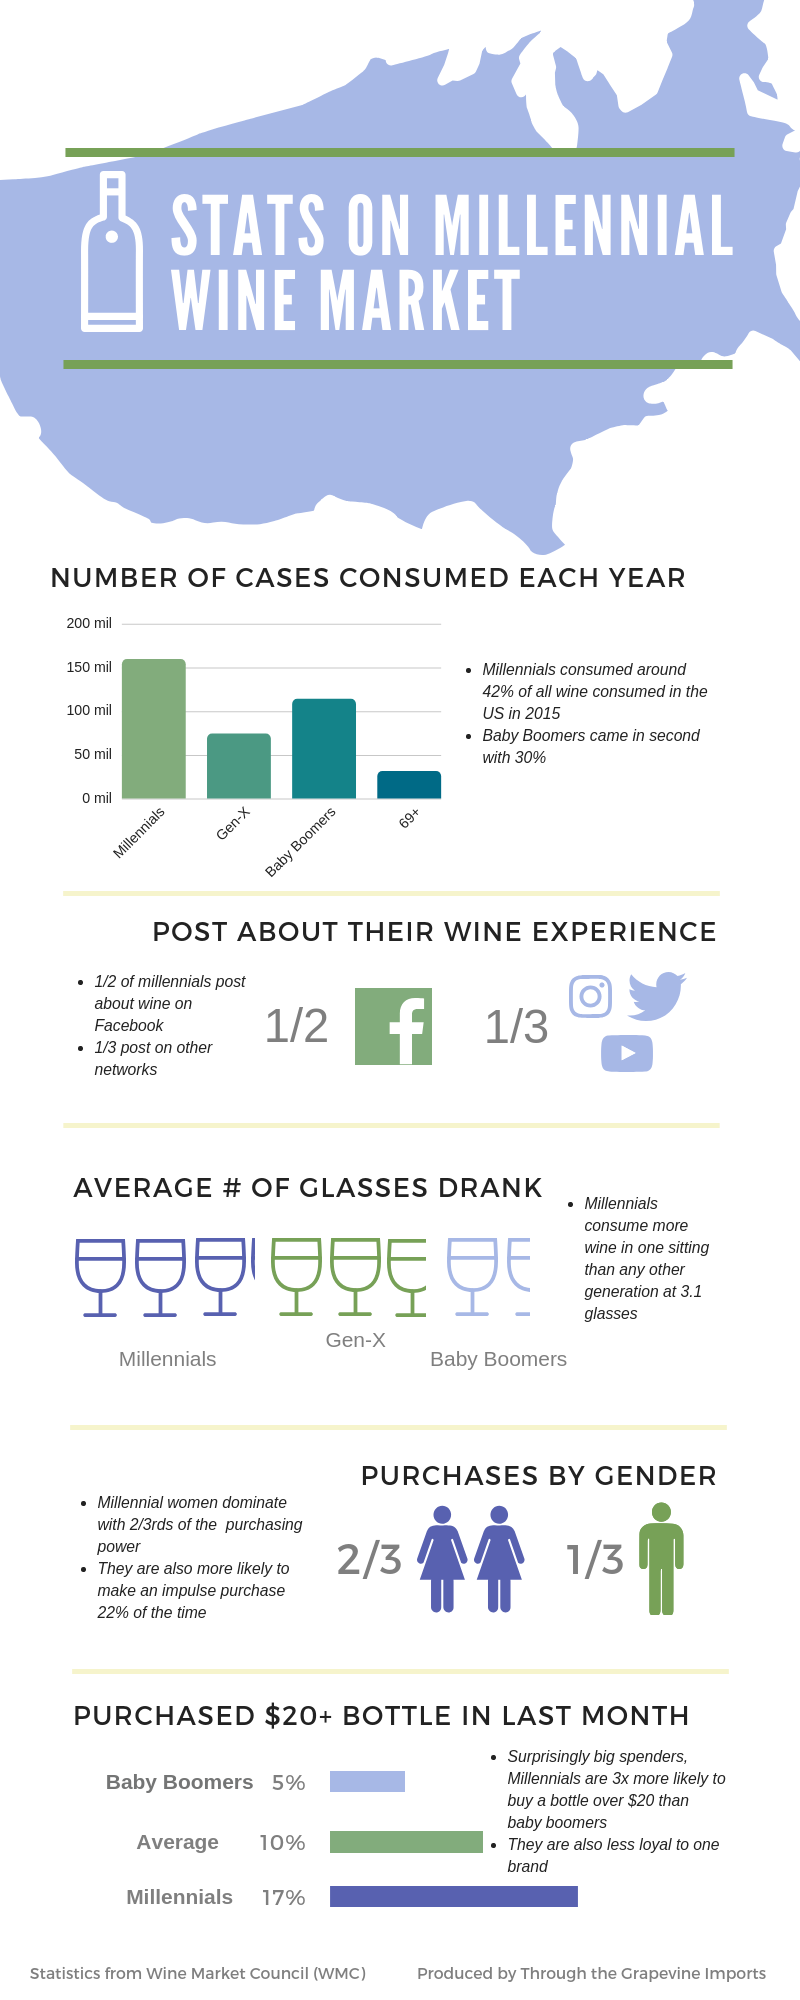 Statistics on Millennials in the Wine Marketplace